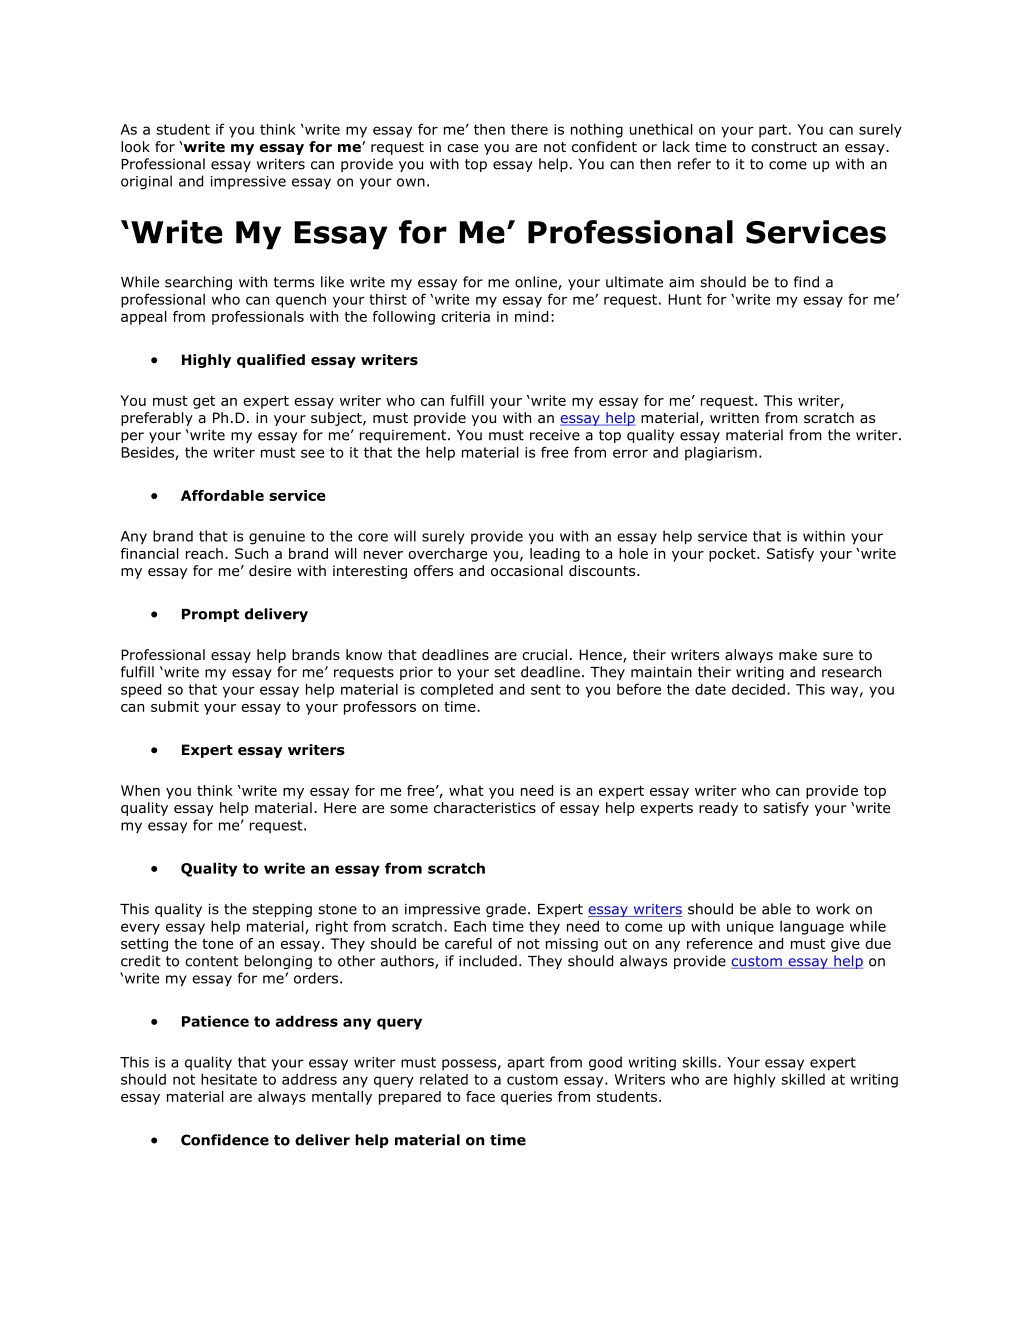 017 Write My Essay For Me Example As Student If You Think Surprising Me.org Free Online Uk Full